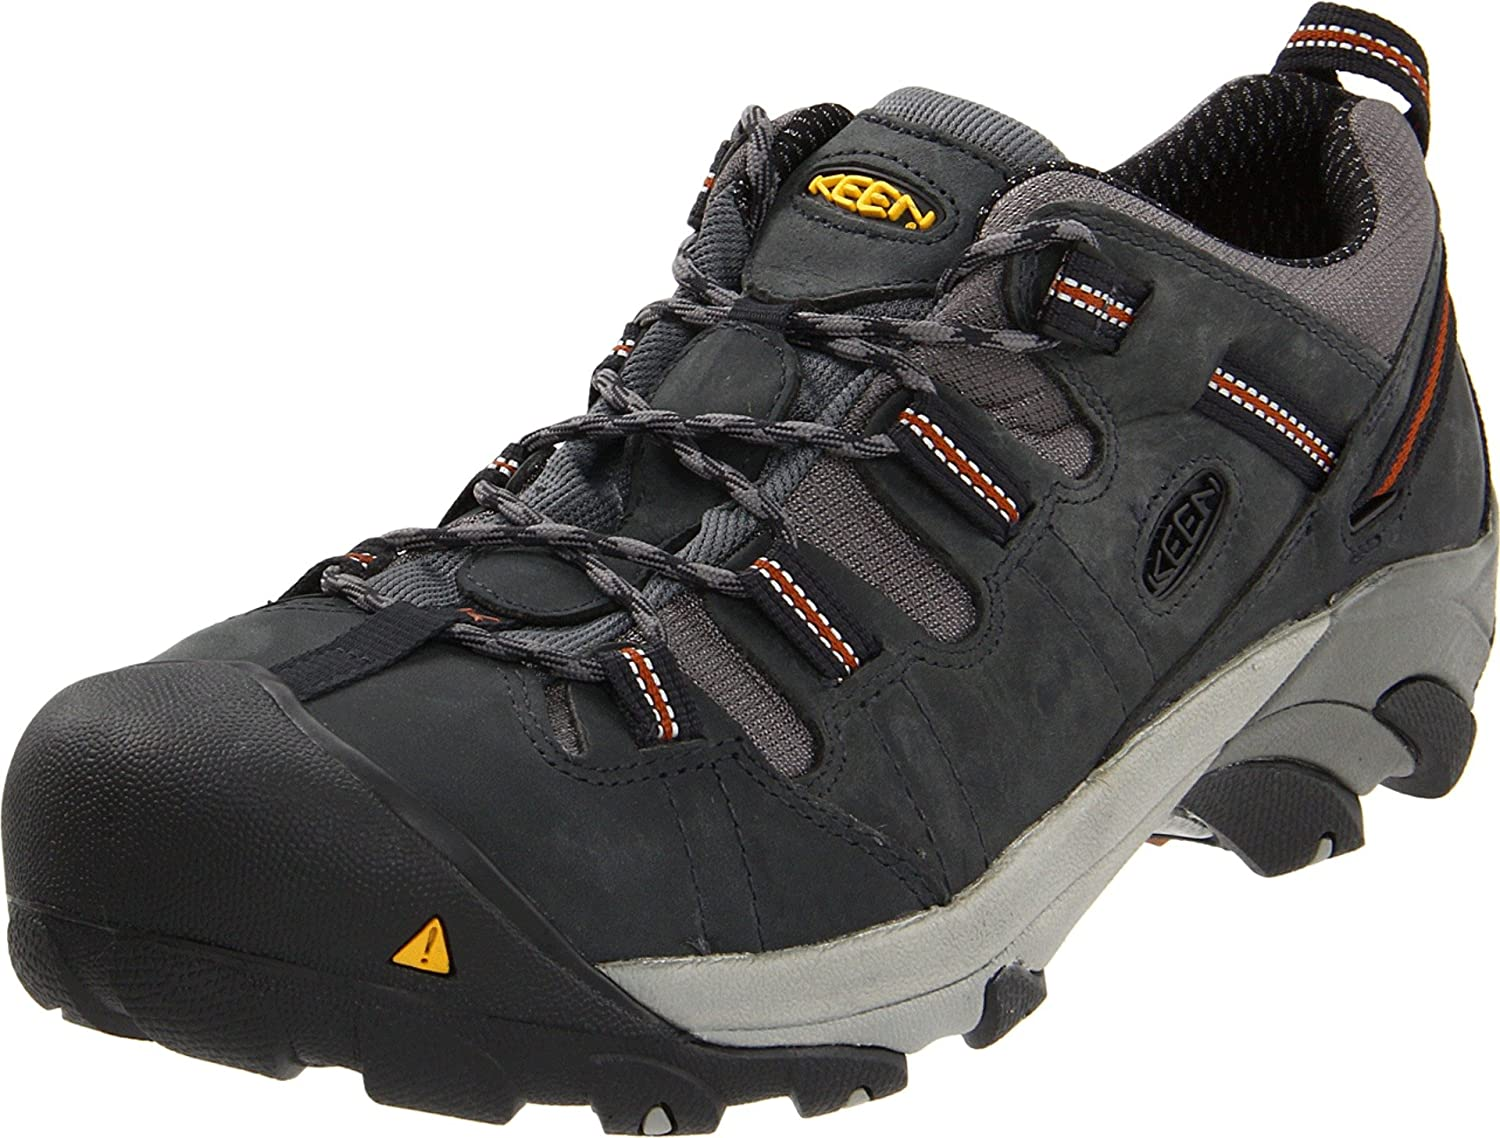 828a5a62d83 KEEN Utility Men's Detroit Low Steel Toe Work Shoe